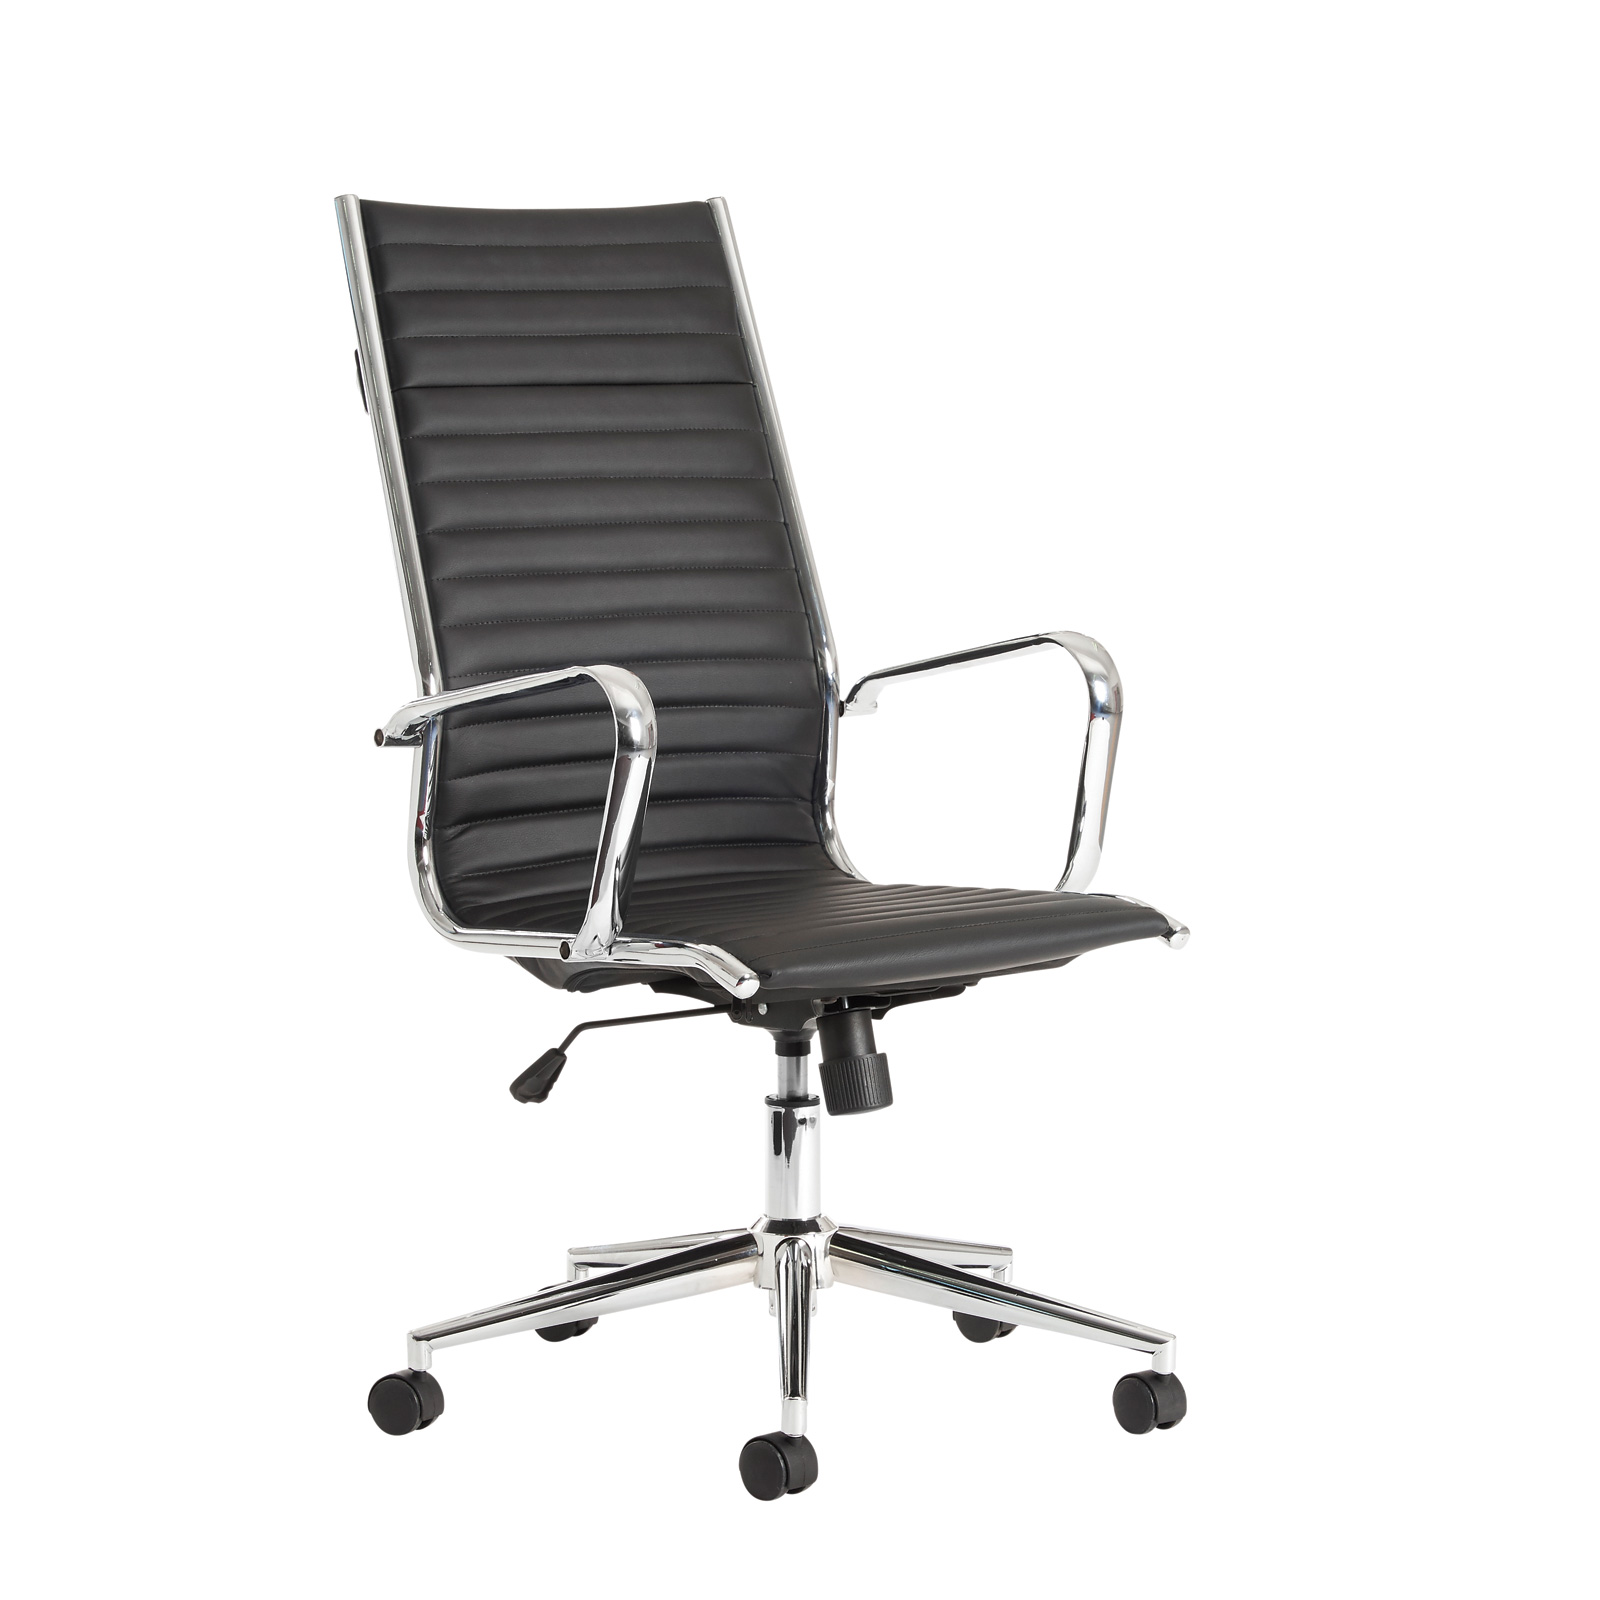 Bari high back executive chair - black